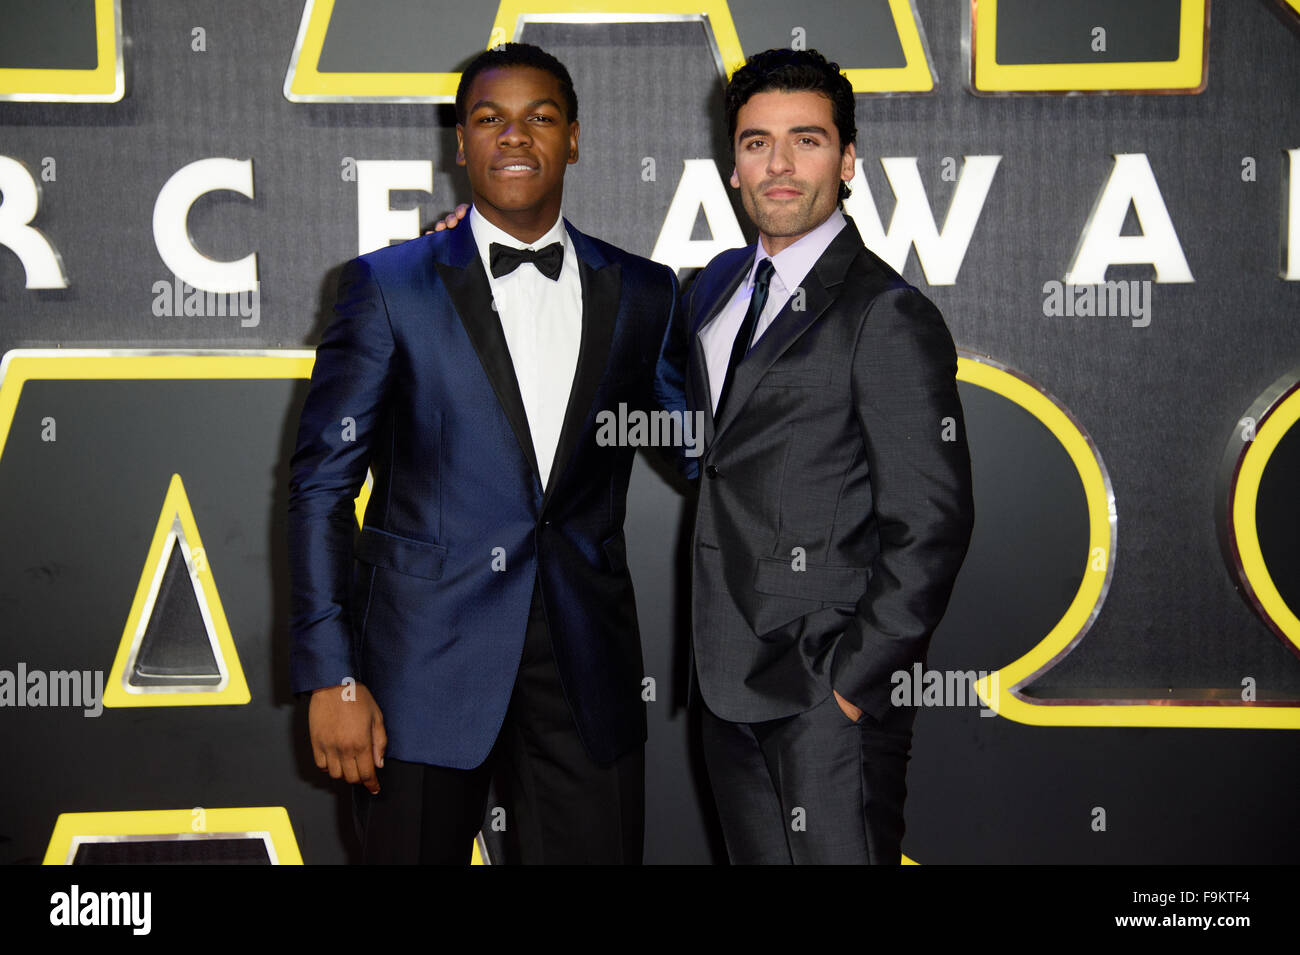 John Boyega and Oscar Isaac pose at the 'Star Wars: The Force Awakens ' premiere in London - Stock Image